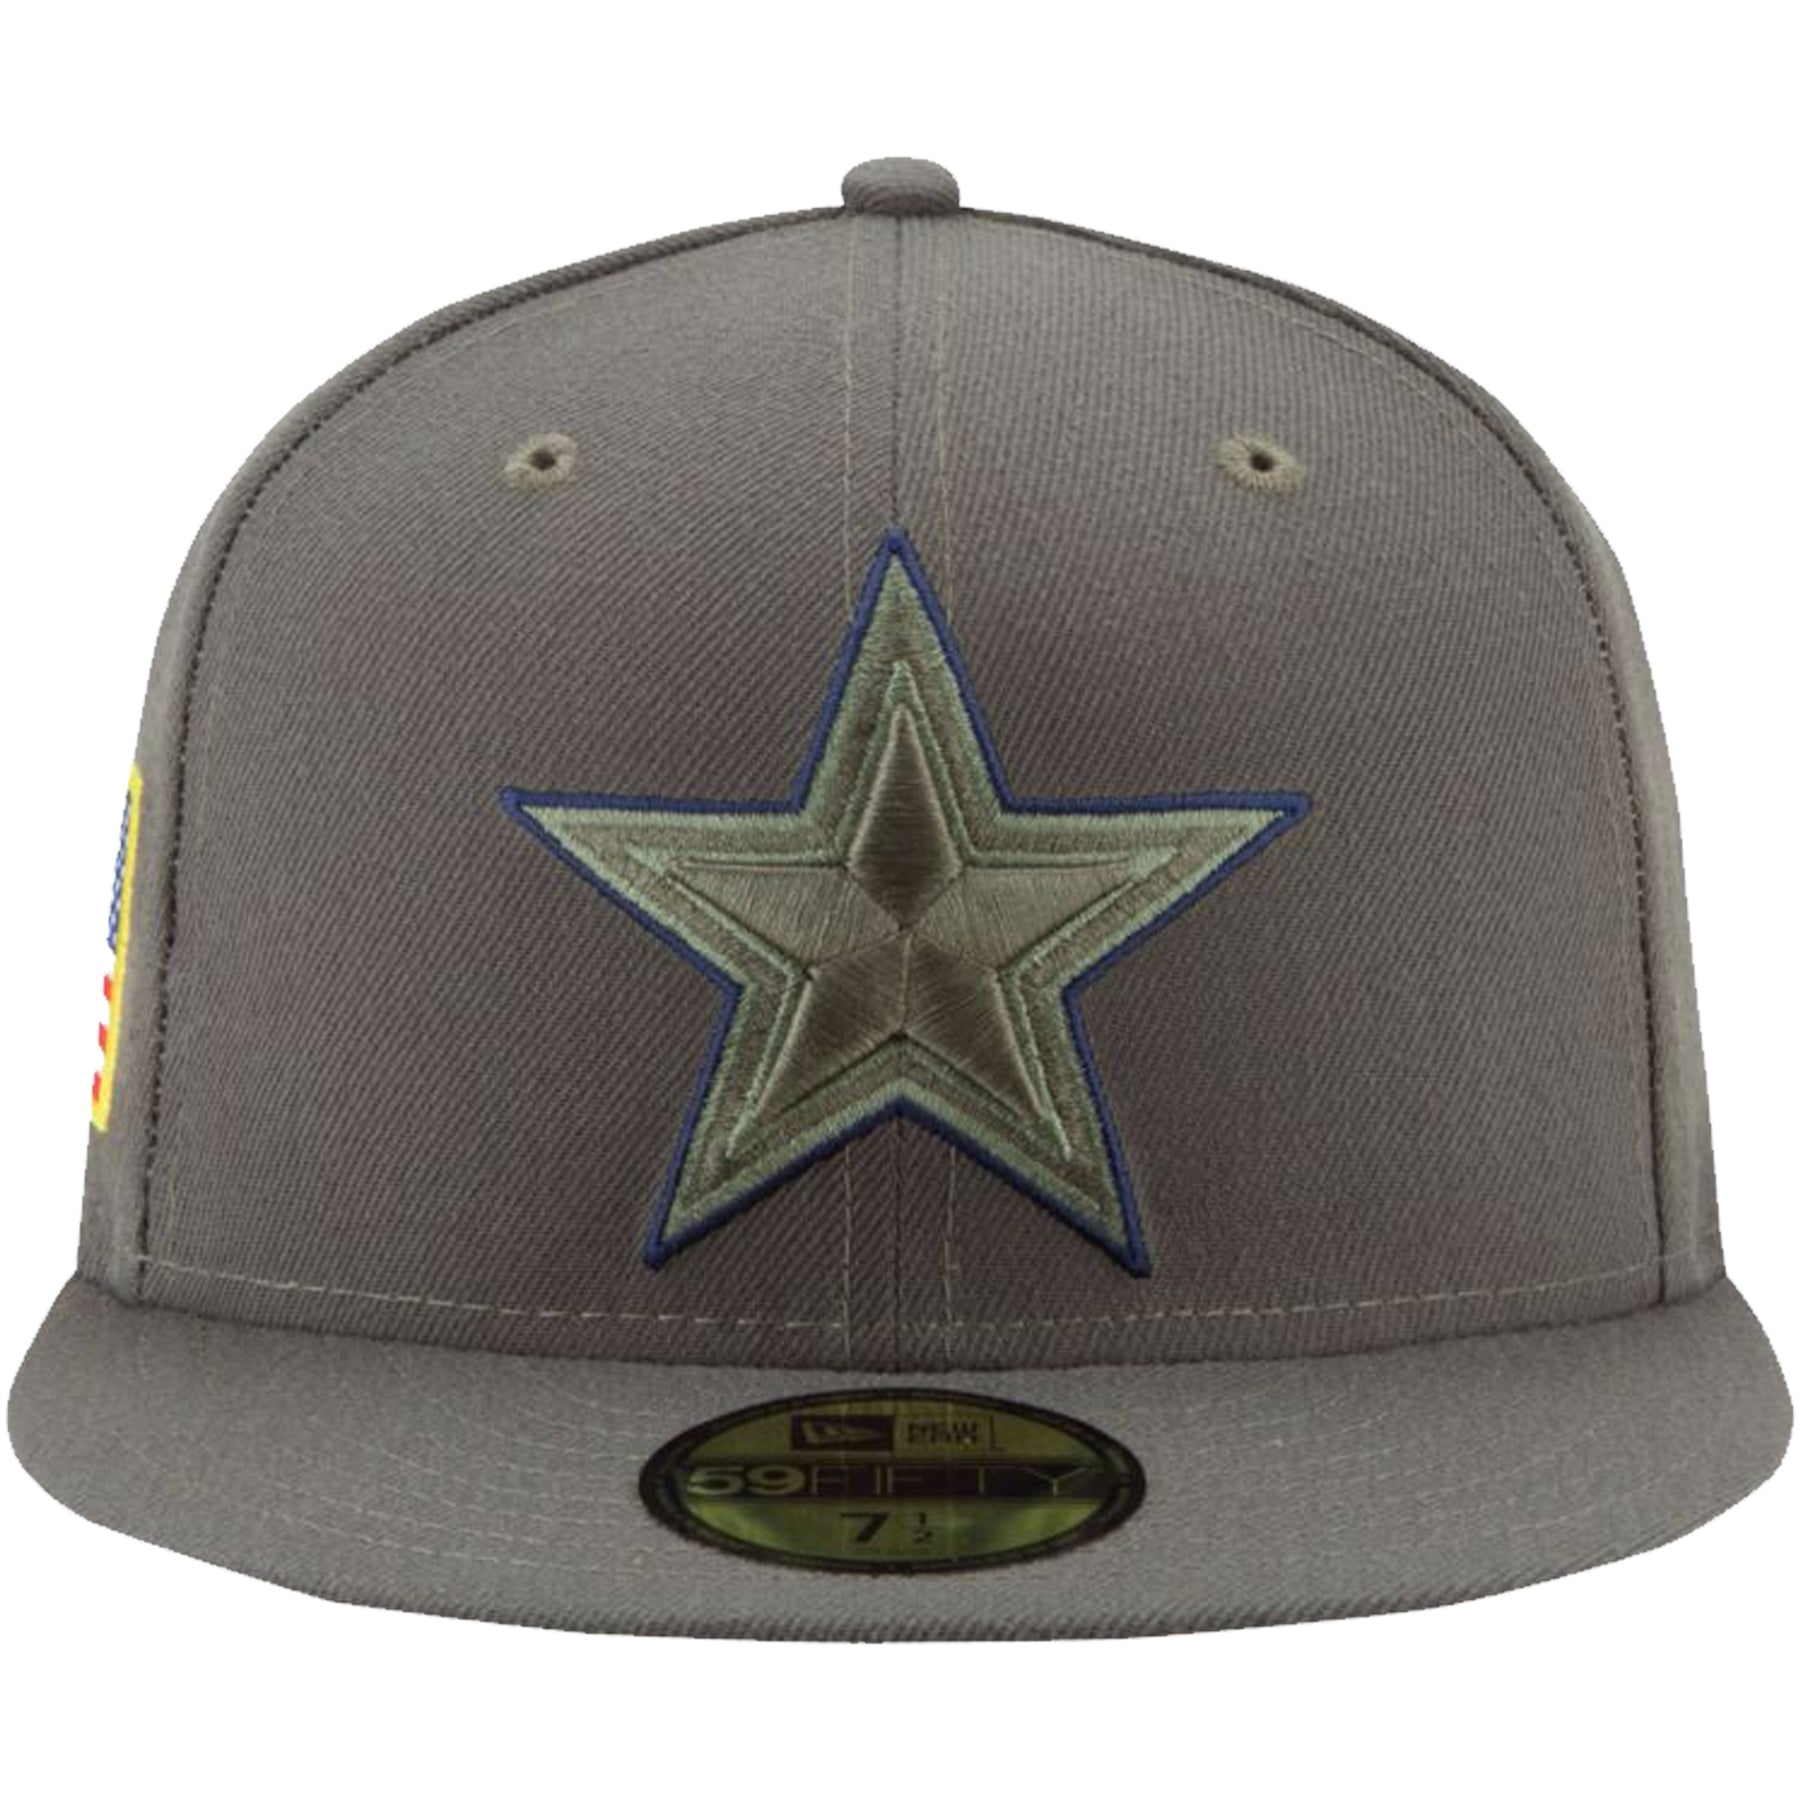 new arrivals 00a75 a9aa1 on the front of the dallas cowboys salute to service fitted cap, the cowboys  logo